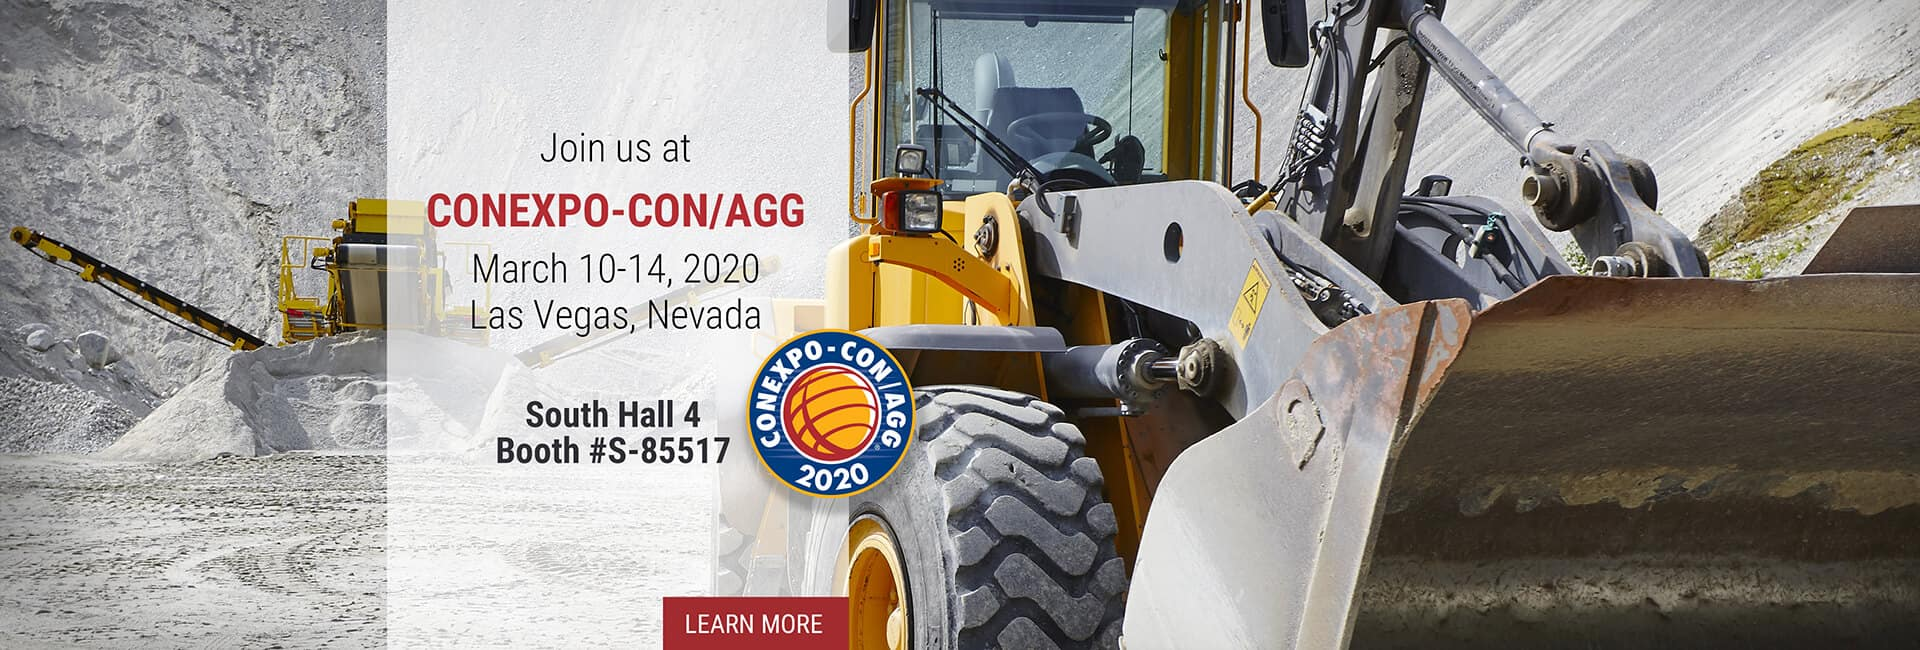 Join us at ConExpo-Con/AGG